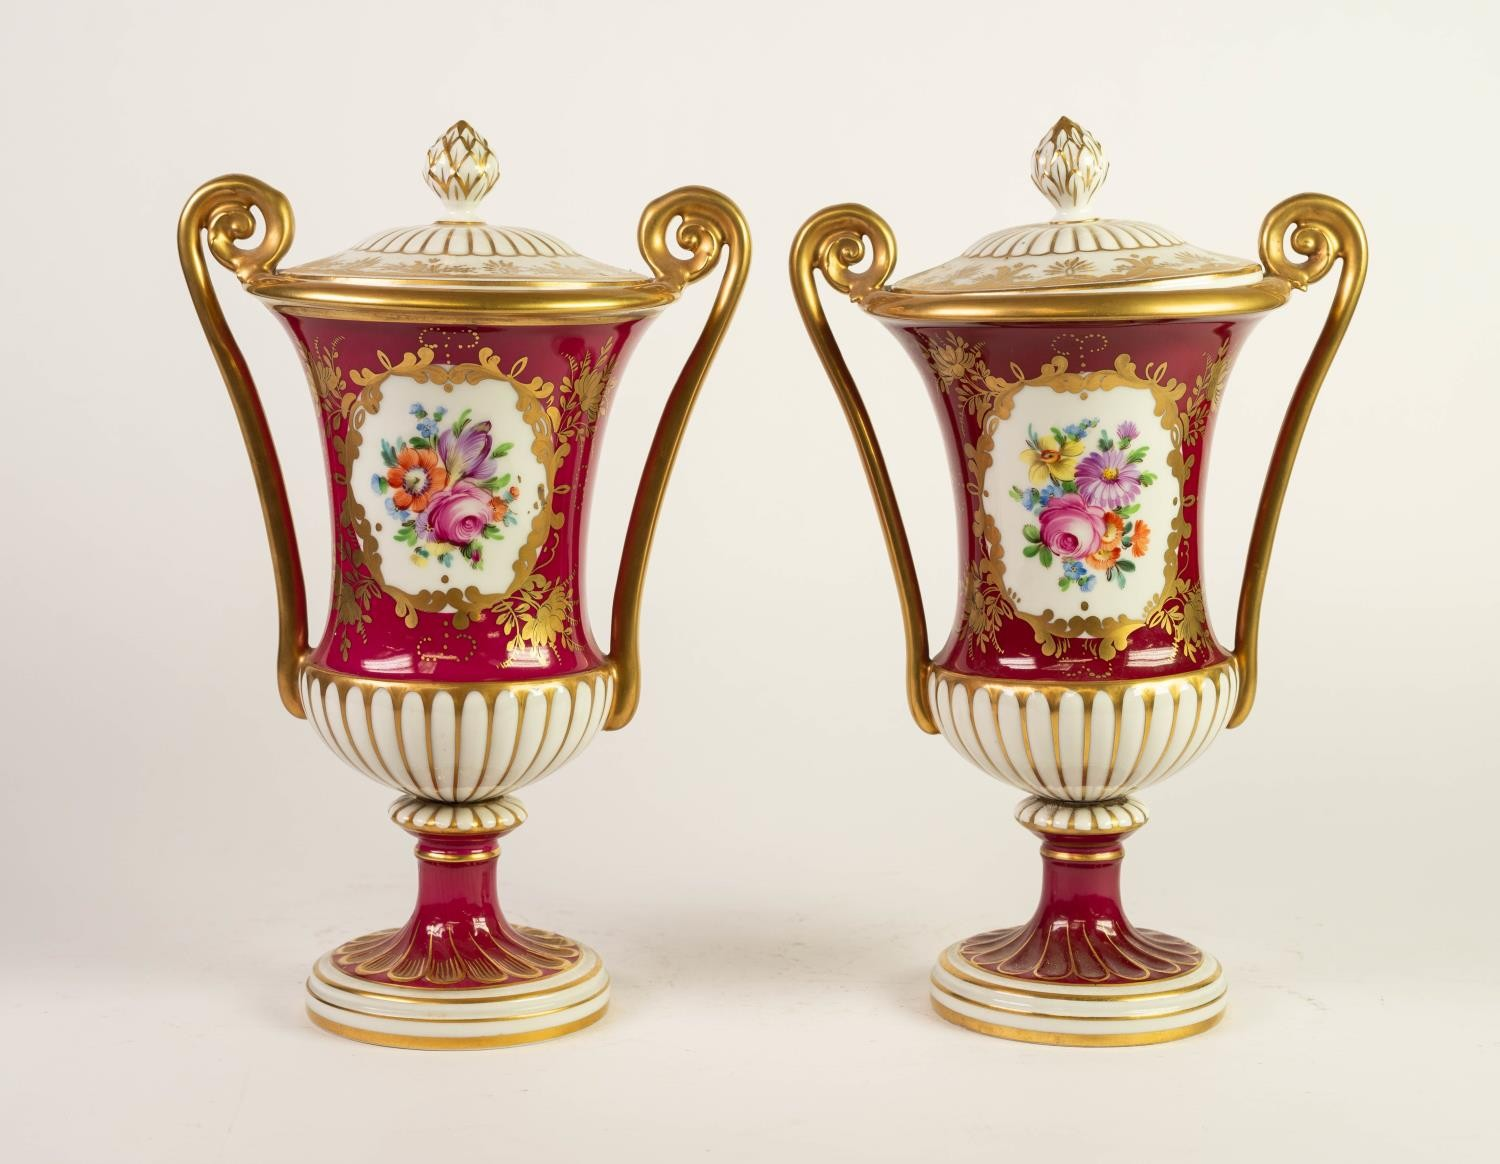 PAIR OF 20th CENTURY 'ORIGINAL DRESDEN' PORCELAIN TWO HANDLED CAMPANA SHAPE PEDESTAL VASES AND LOW